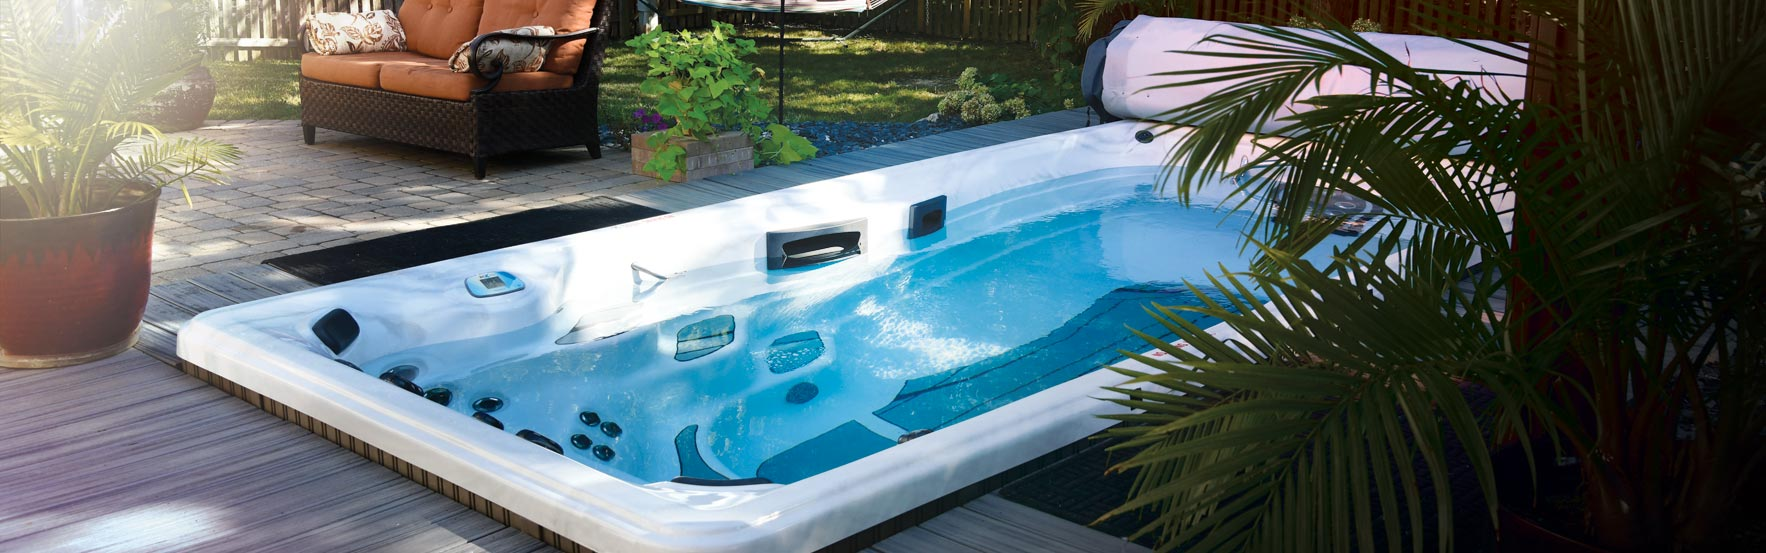 Frequently asked questions about swim spas